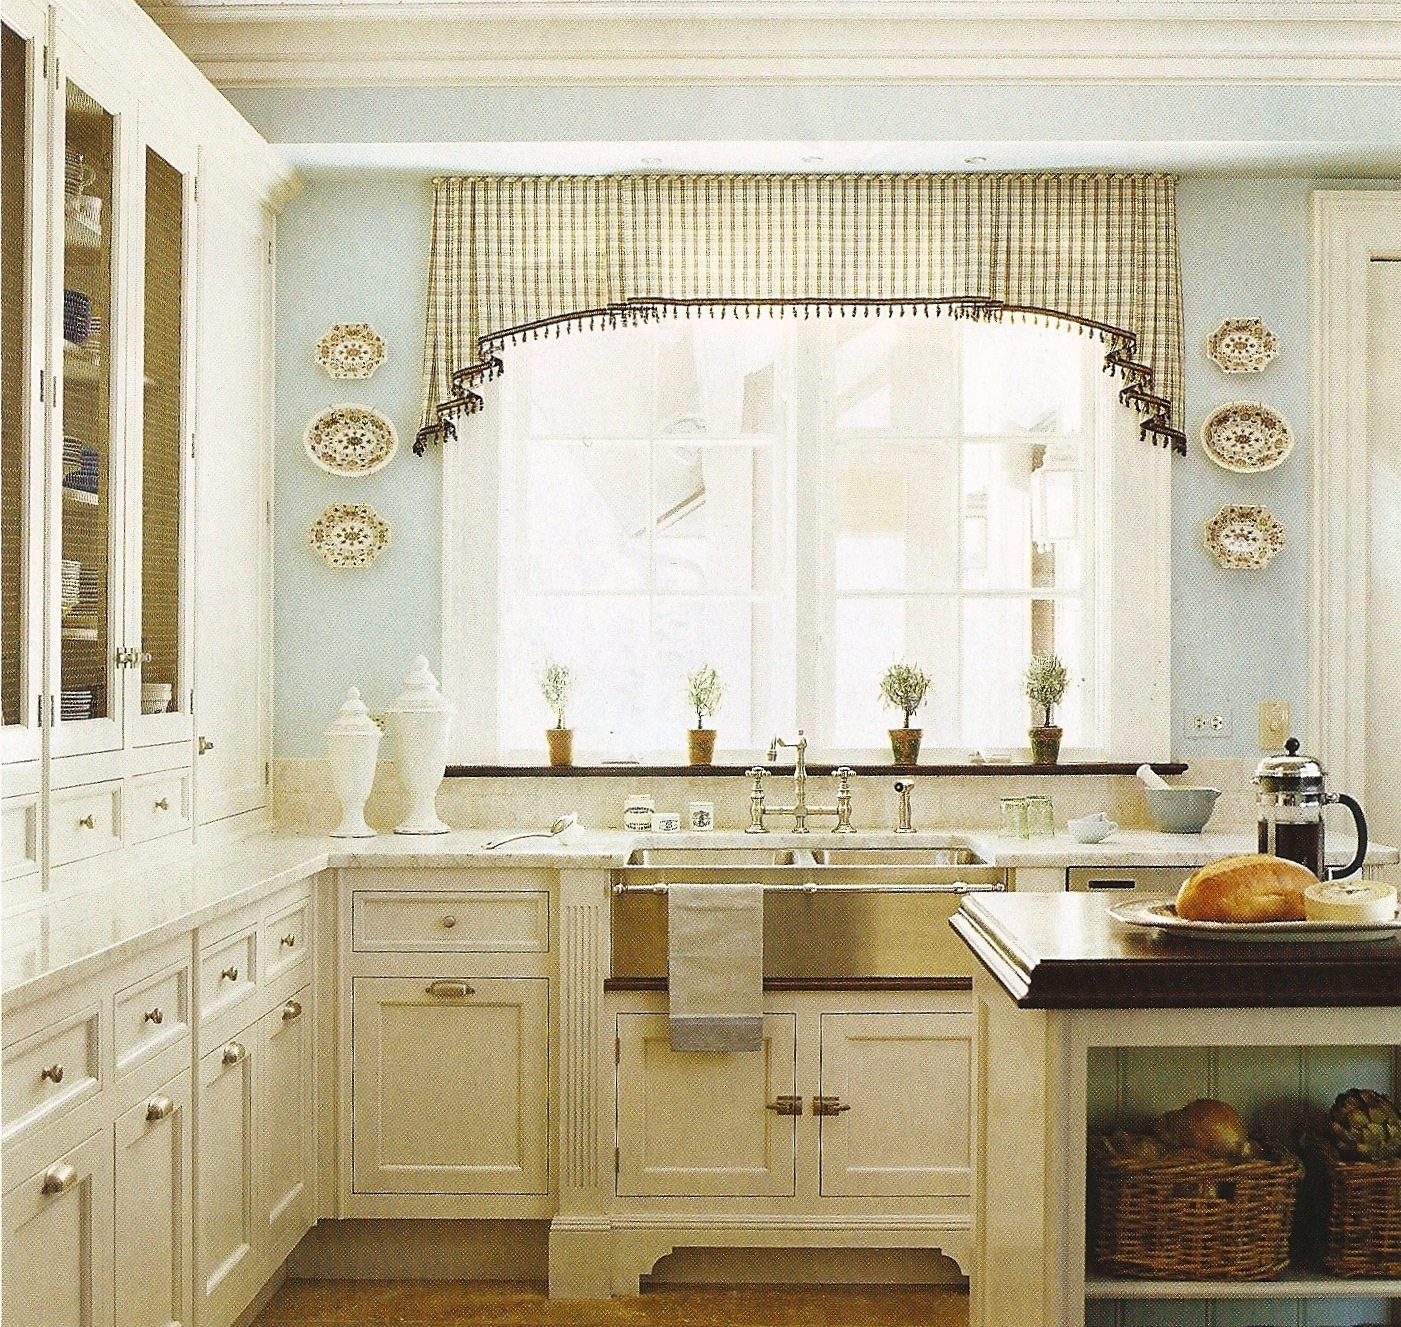 Kitchen Countertops That Look Like Wood: Design Dump: White Kitchen + Wood Countertops